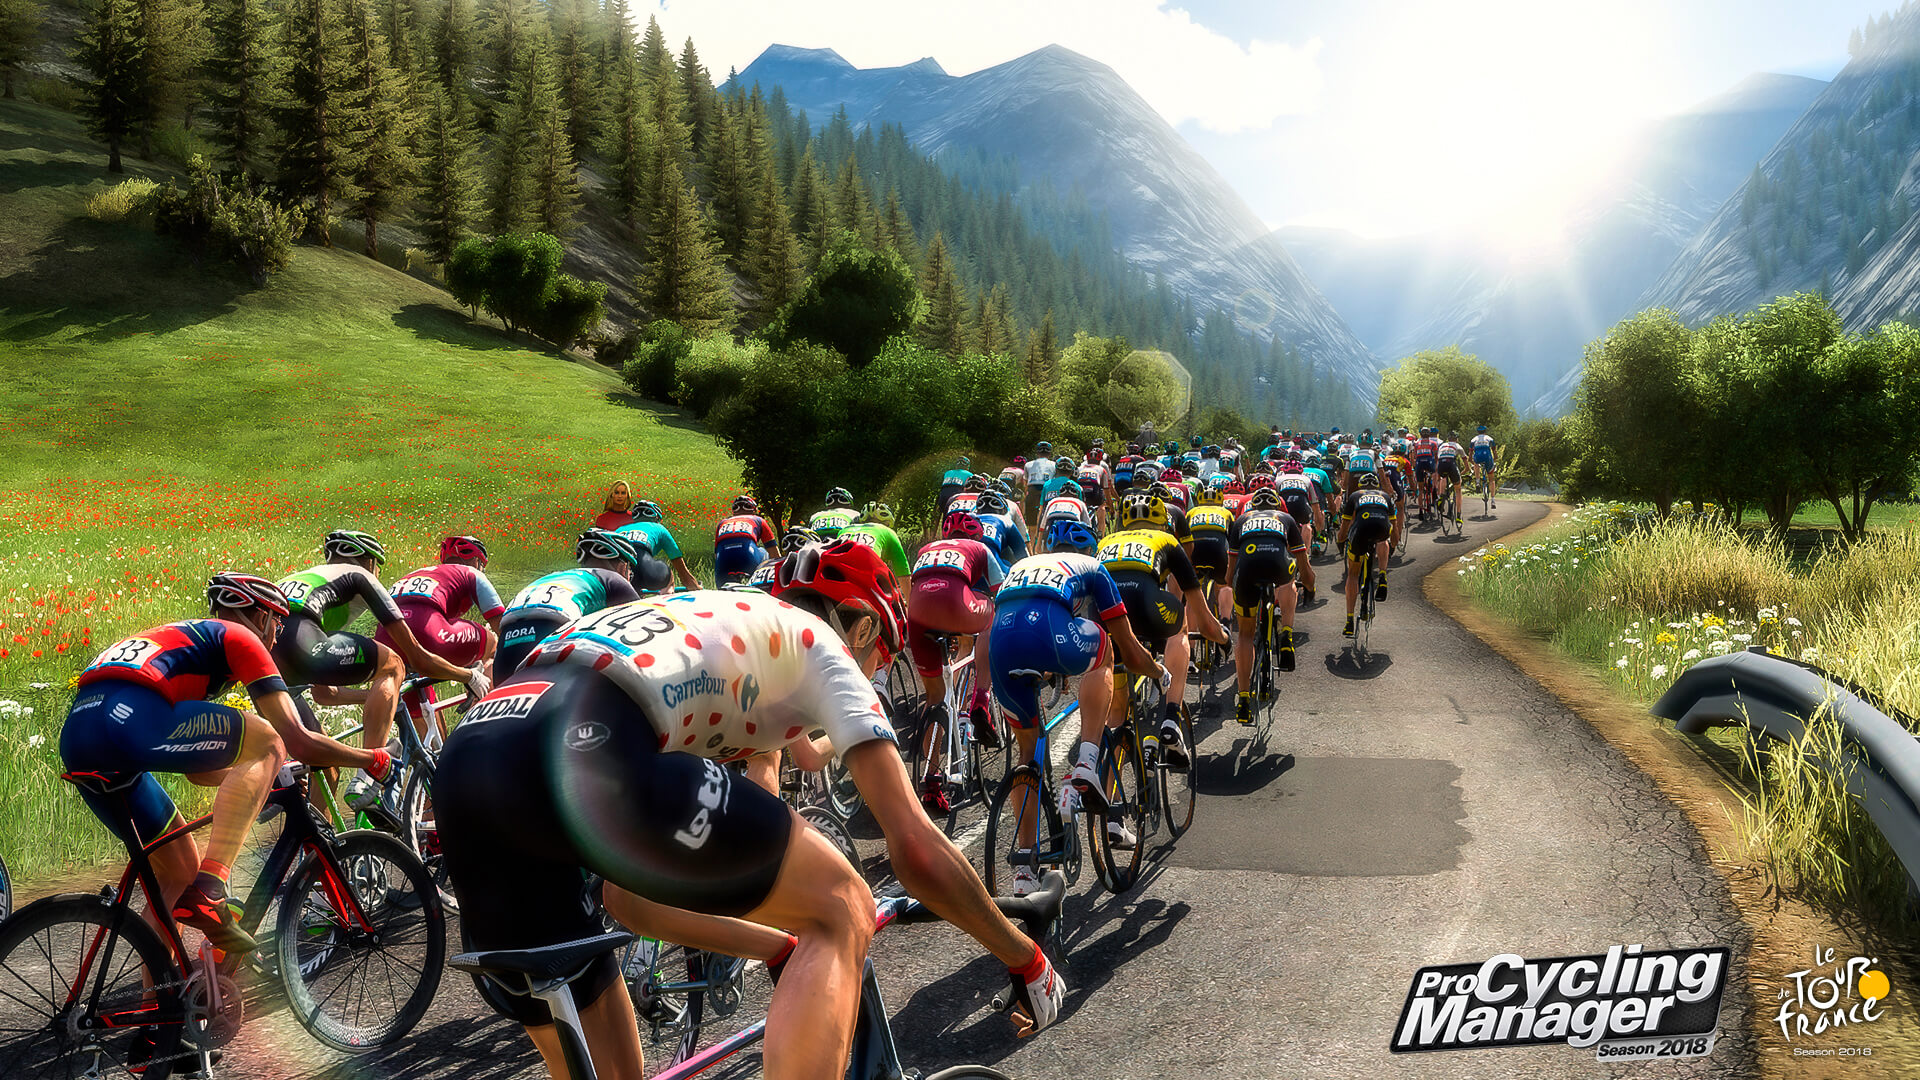 News   Focus Home Interactive The official Tour de France 2018 video games unveiled in new images